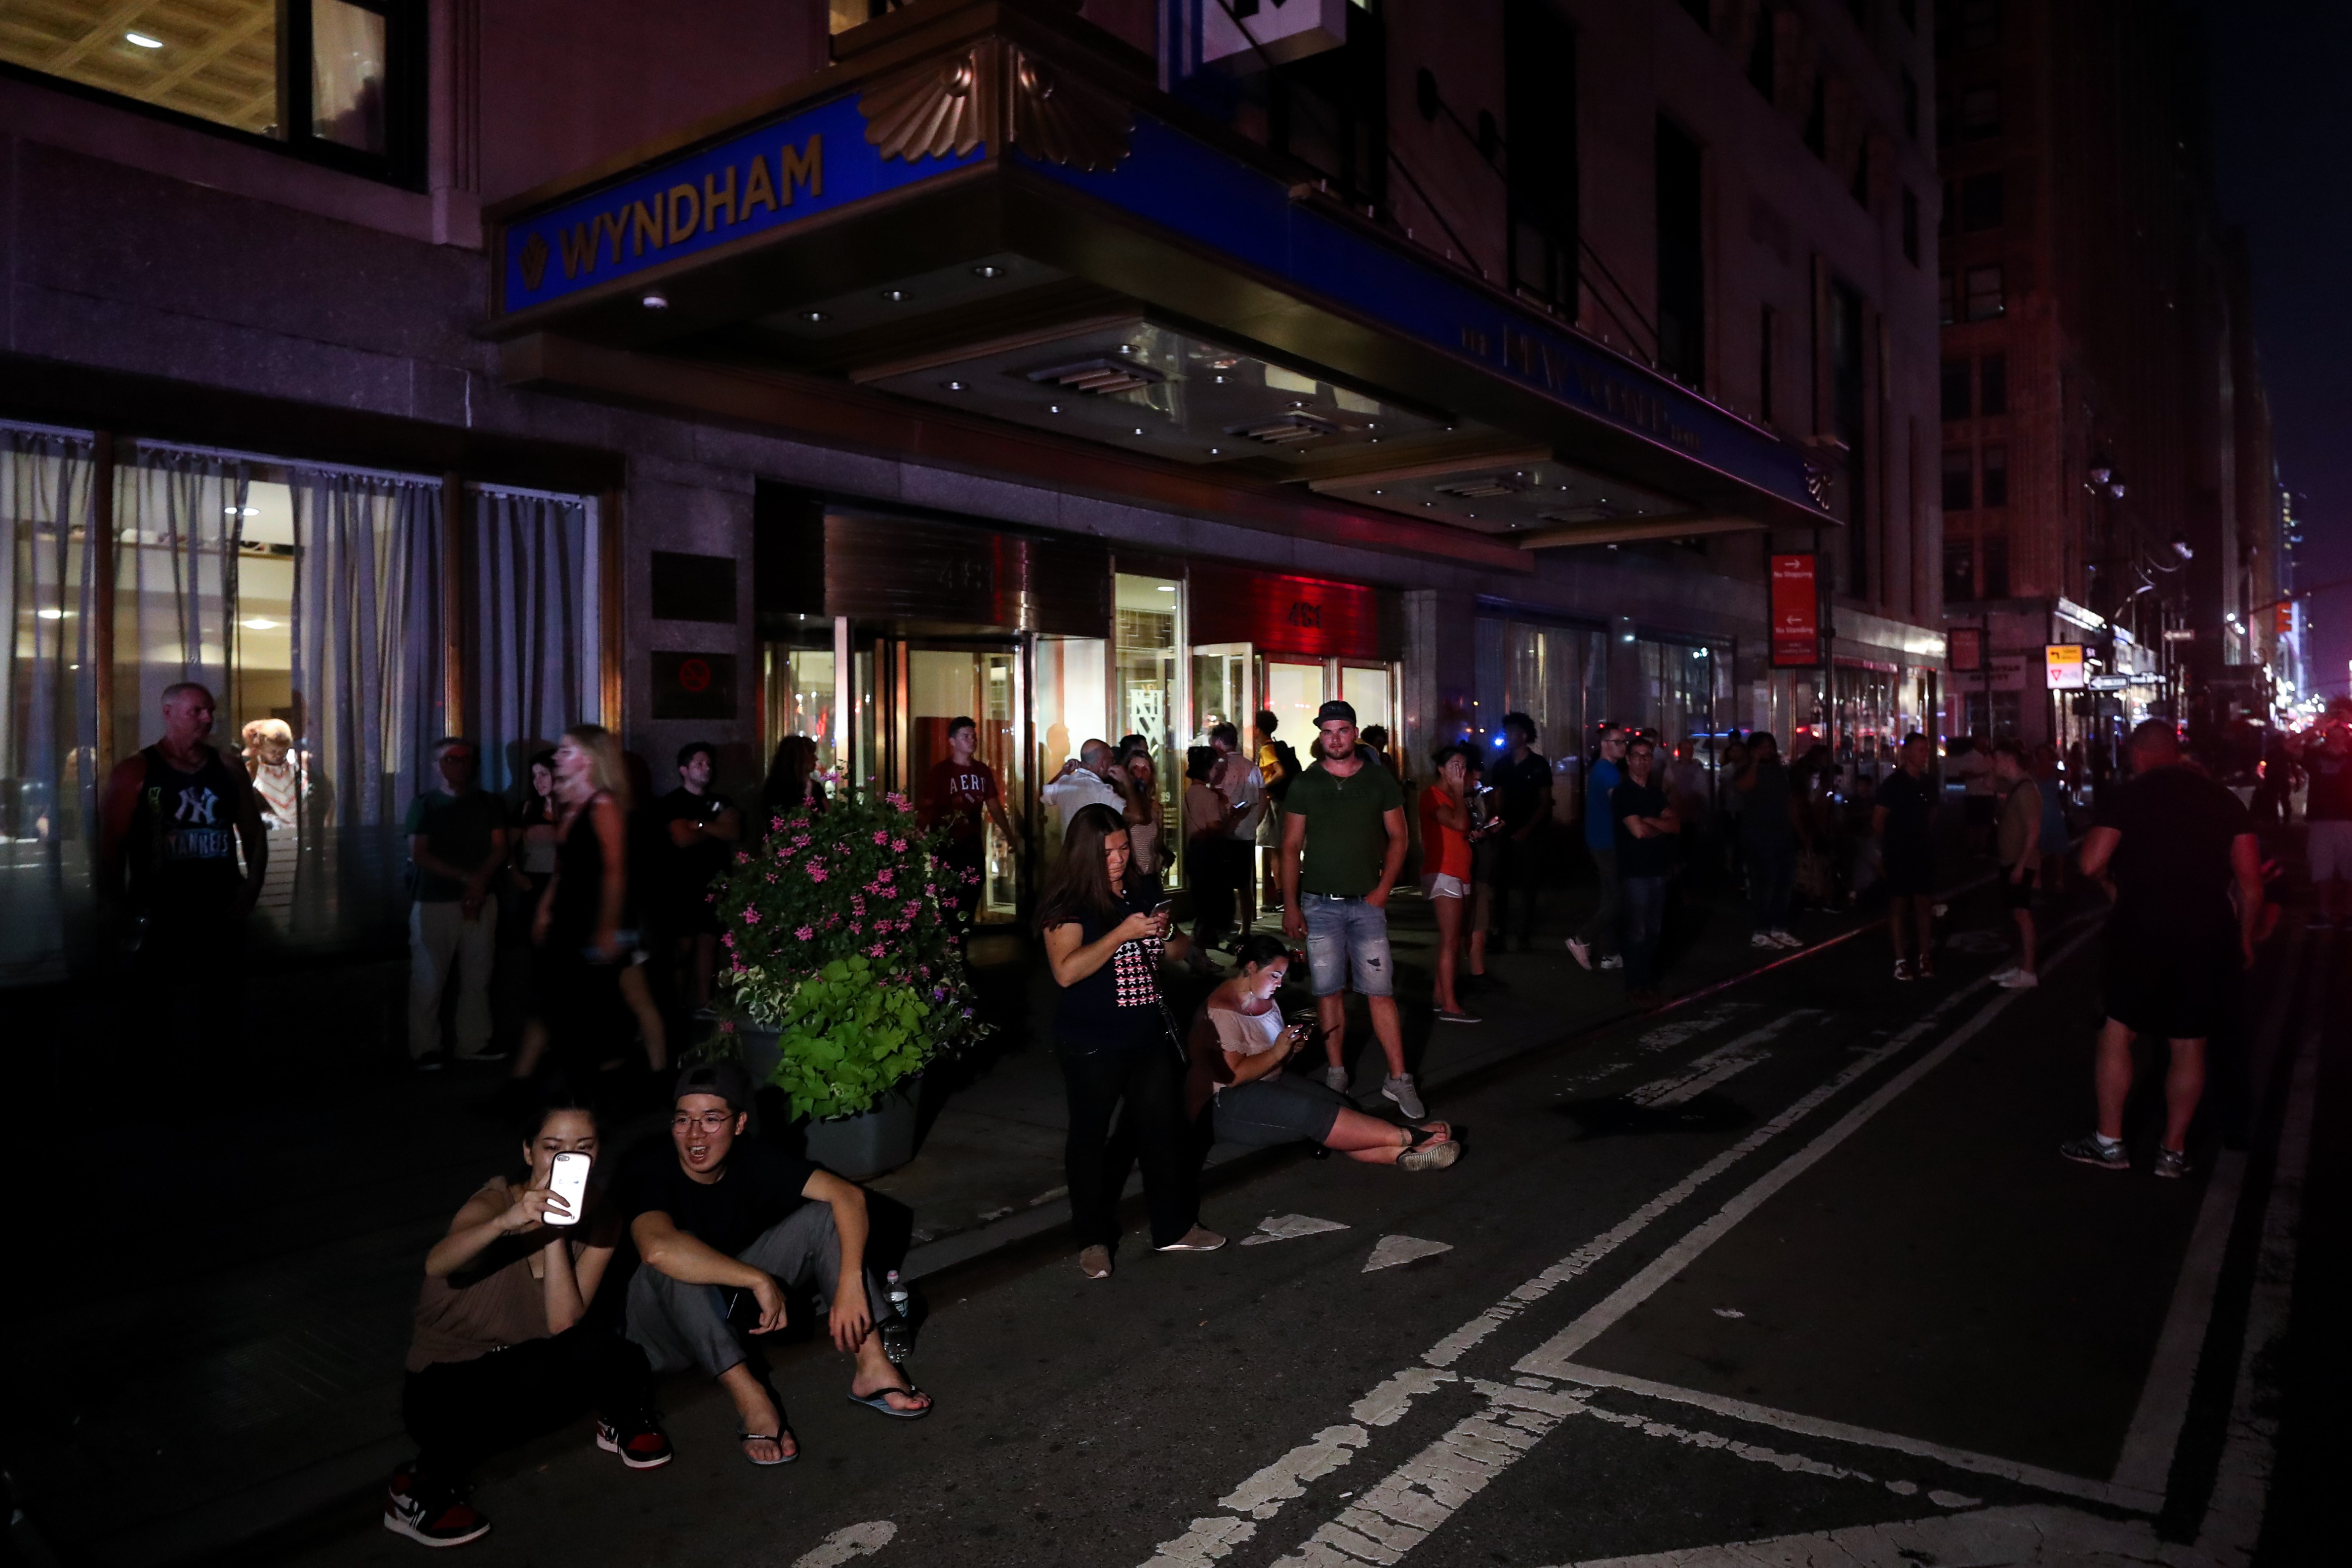 NYC Power Outages Have Had 'Devastating' Effects on Restaurants